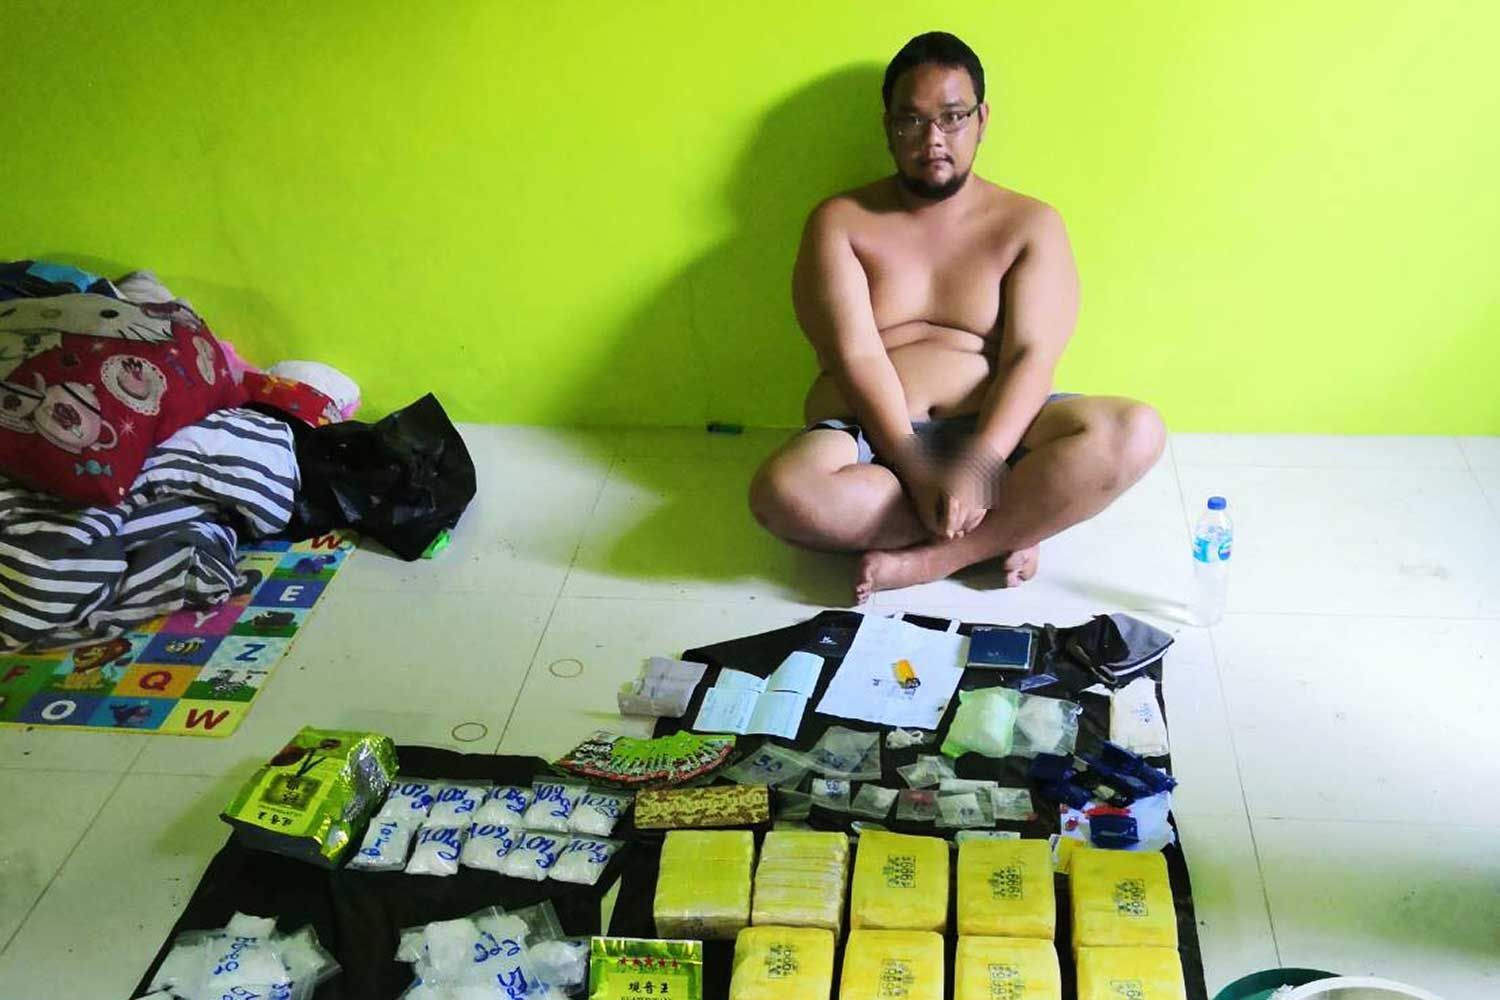 Suspect Krittamet Ngiabsa-ngad, 28, arrested making deliveries of drugs sold by a 